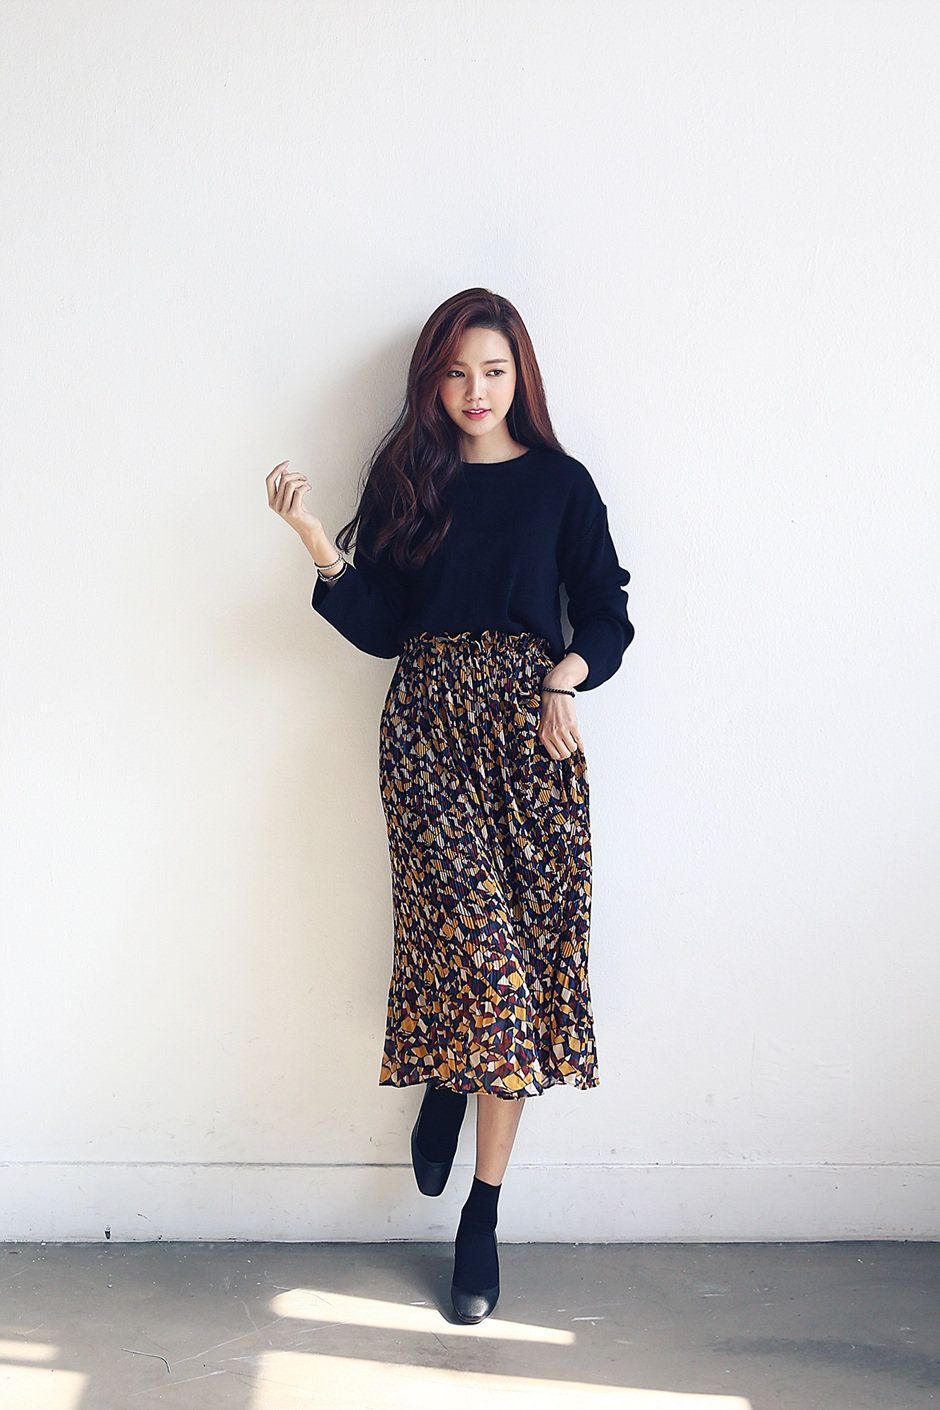 who i want to be fashion midi skirt outfit korean